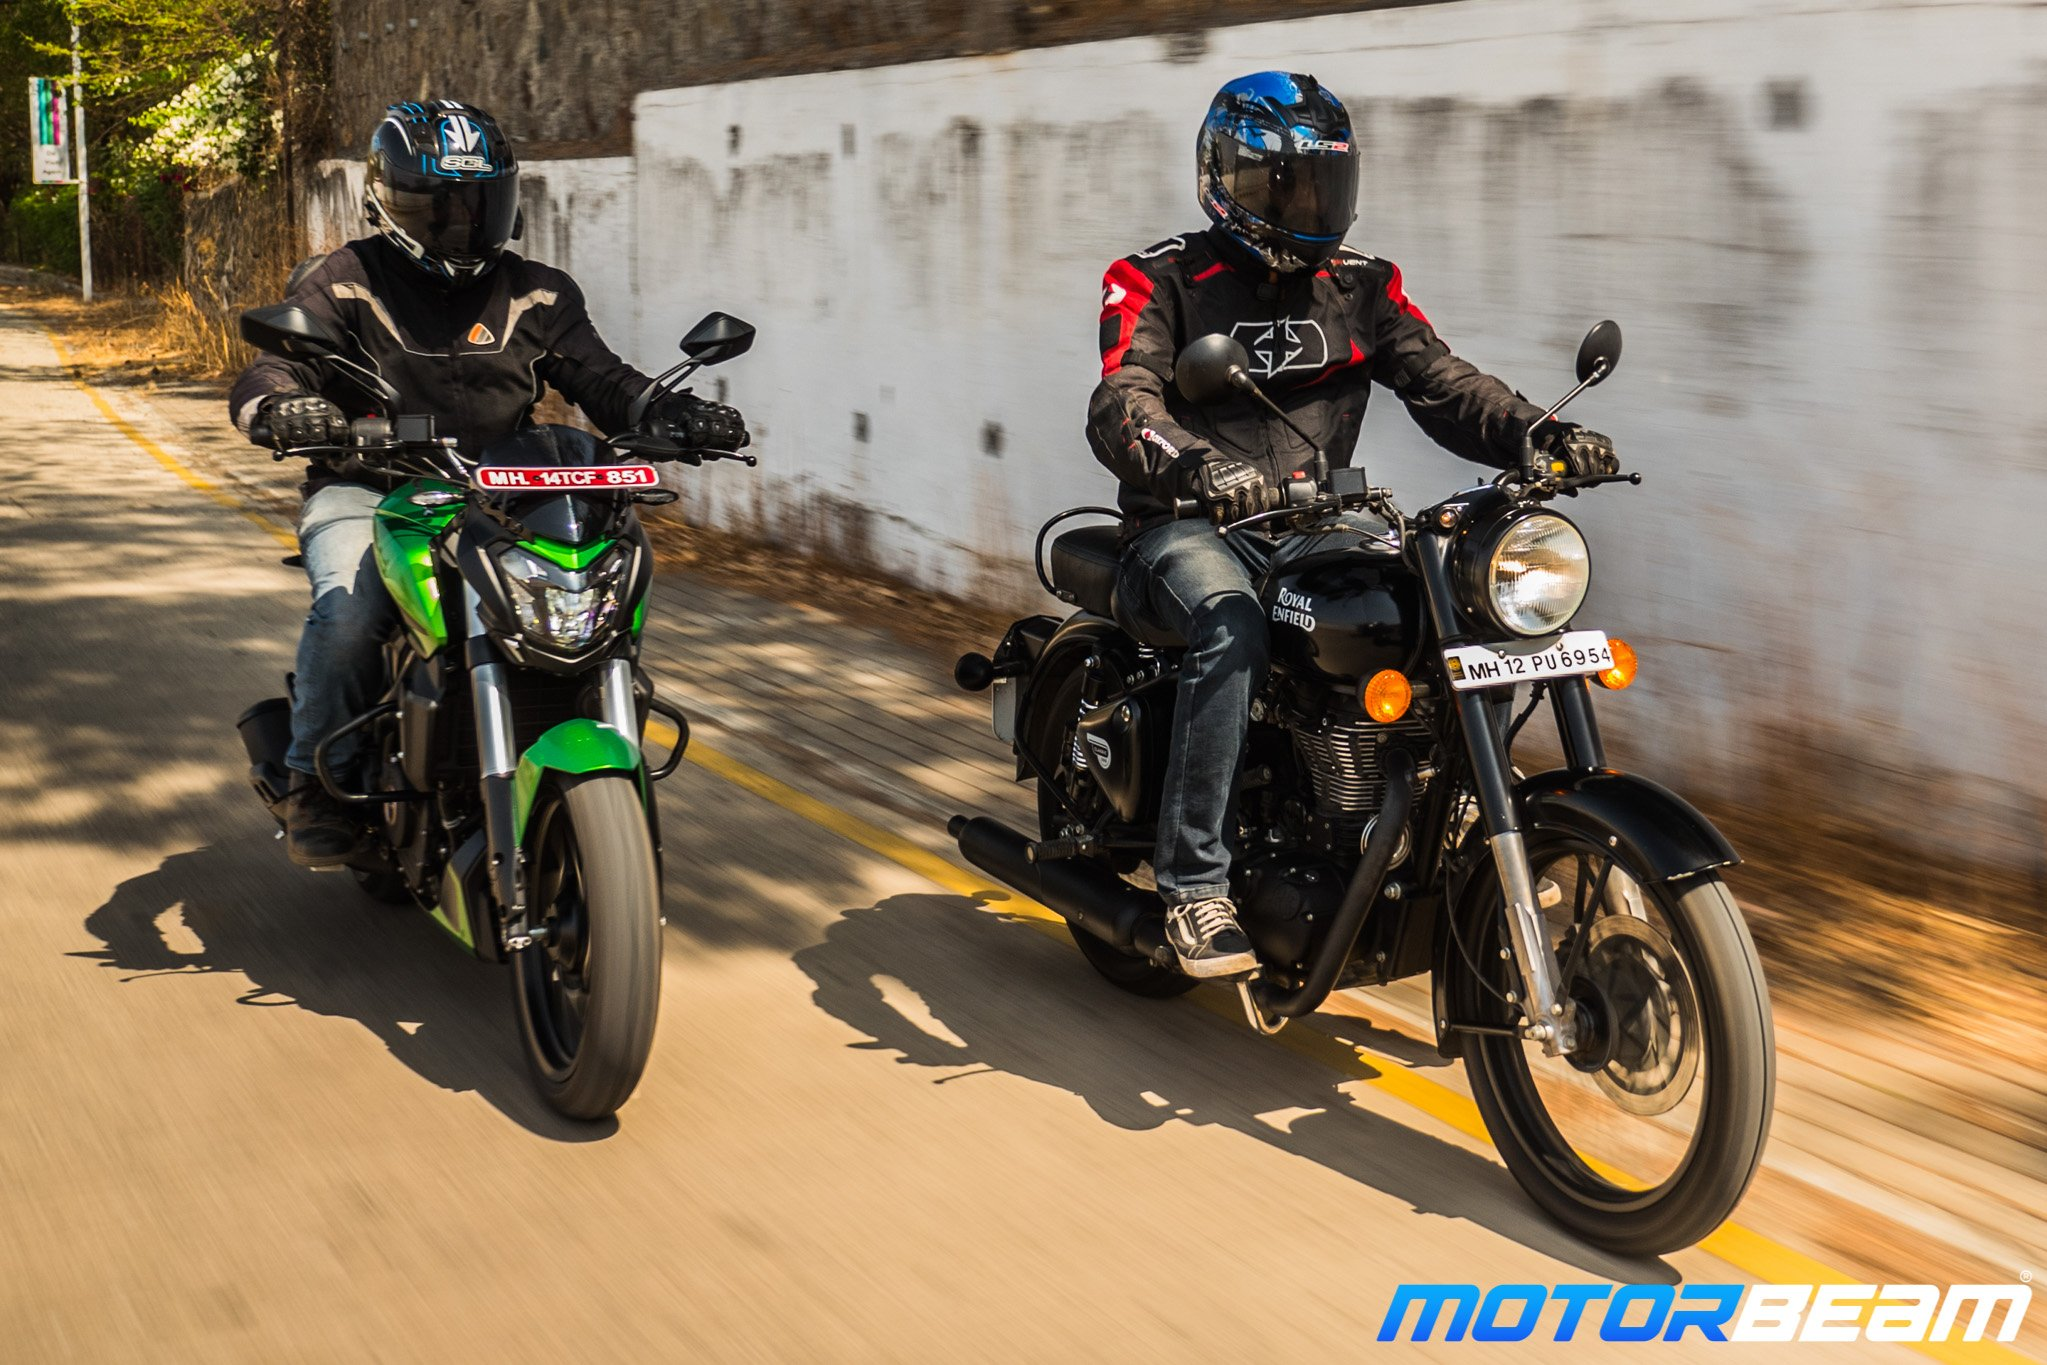 Bajaj Dominar 400 vs Royal Enfield Classic 500 Comparison Test